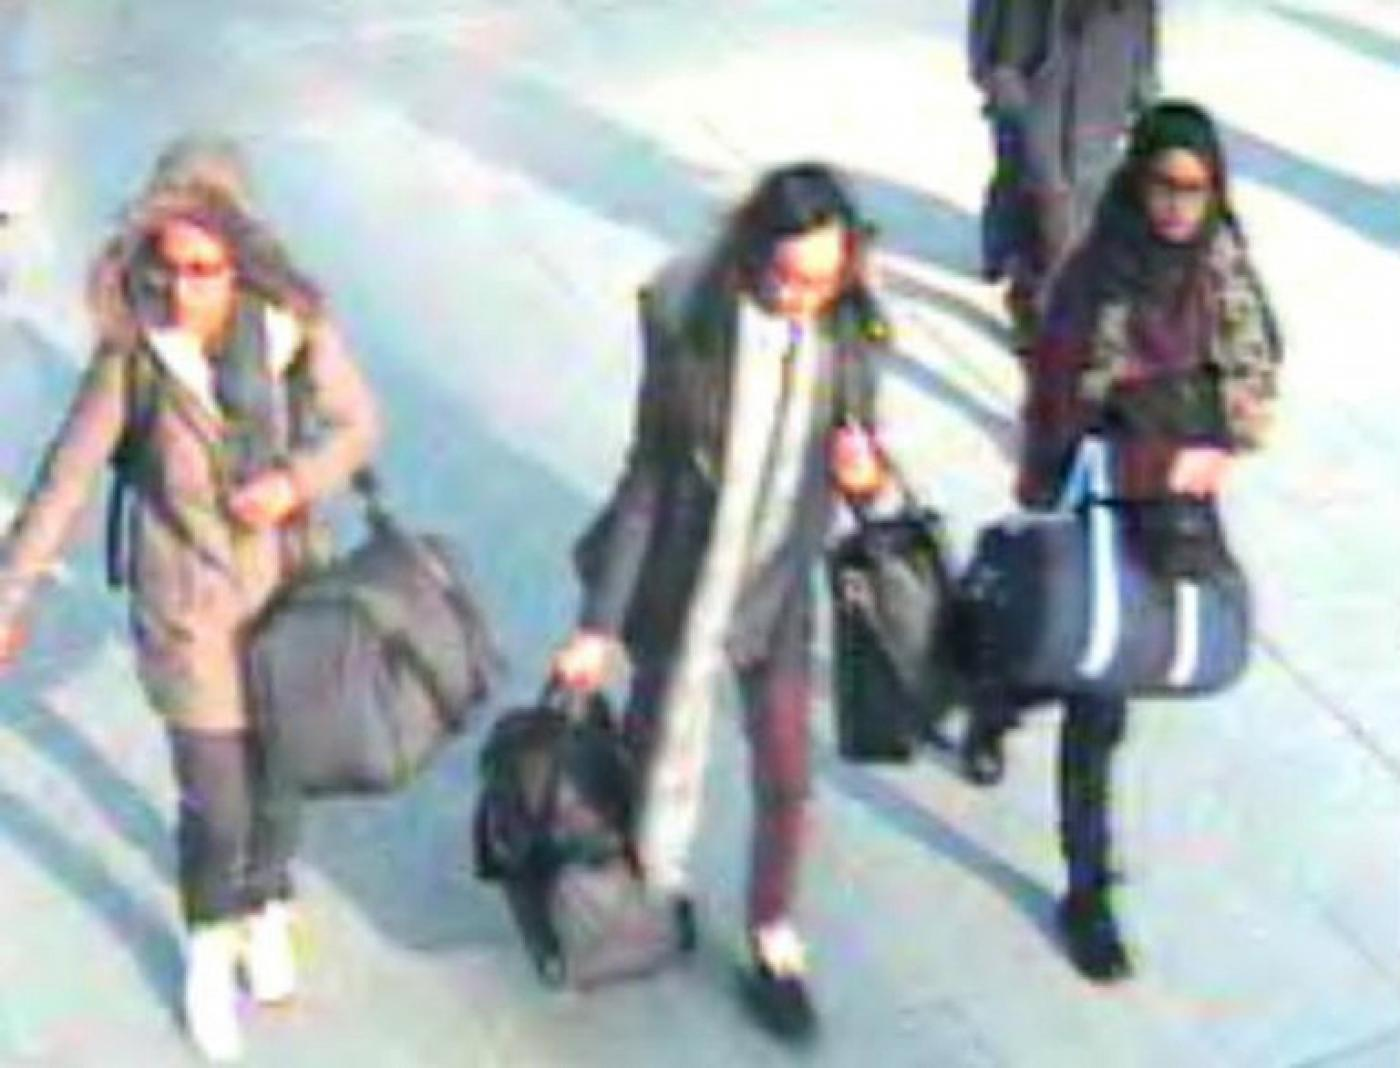 Islamic State teen Begum asks United Kingdom to show 'more mercy'